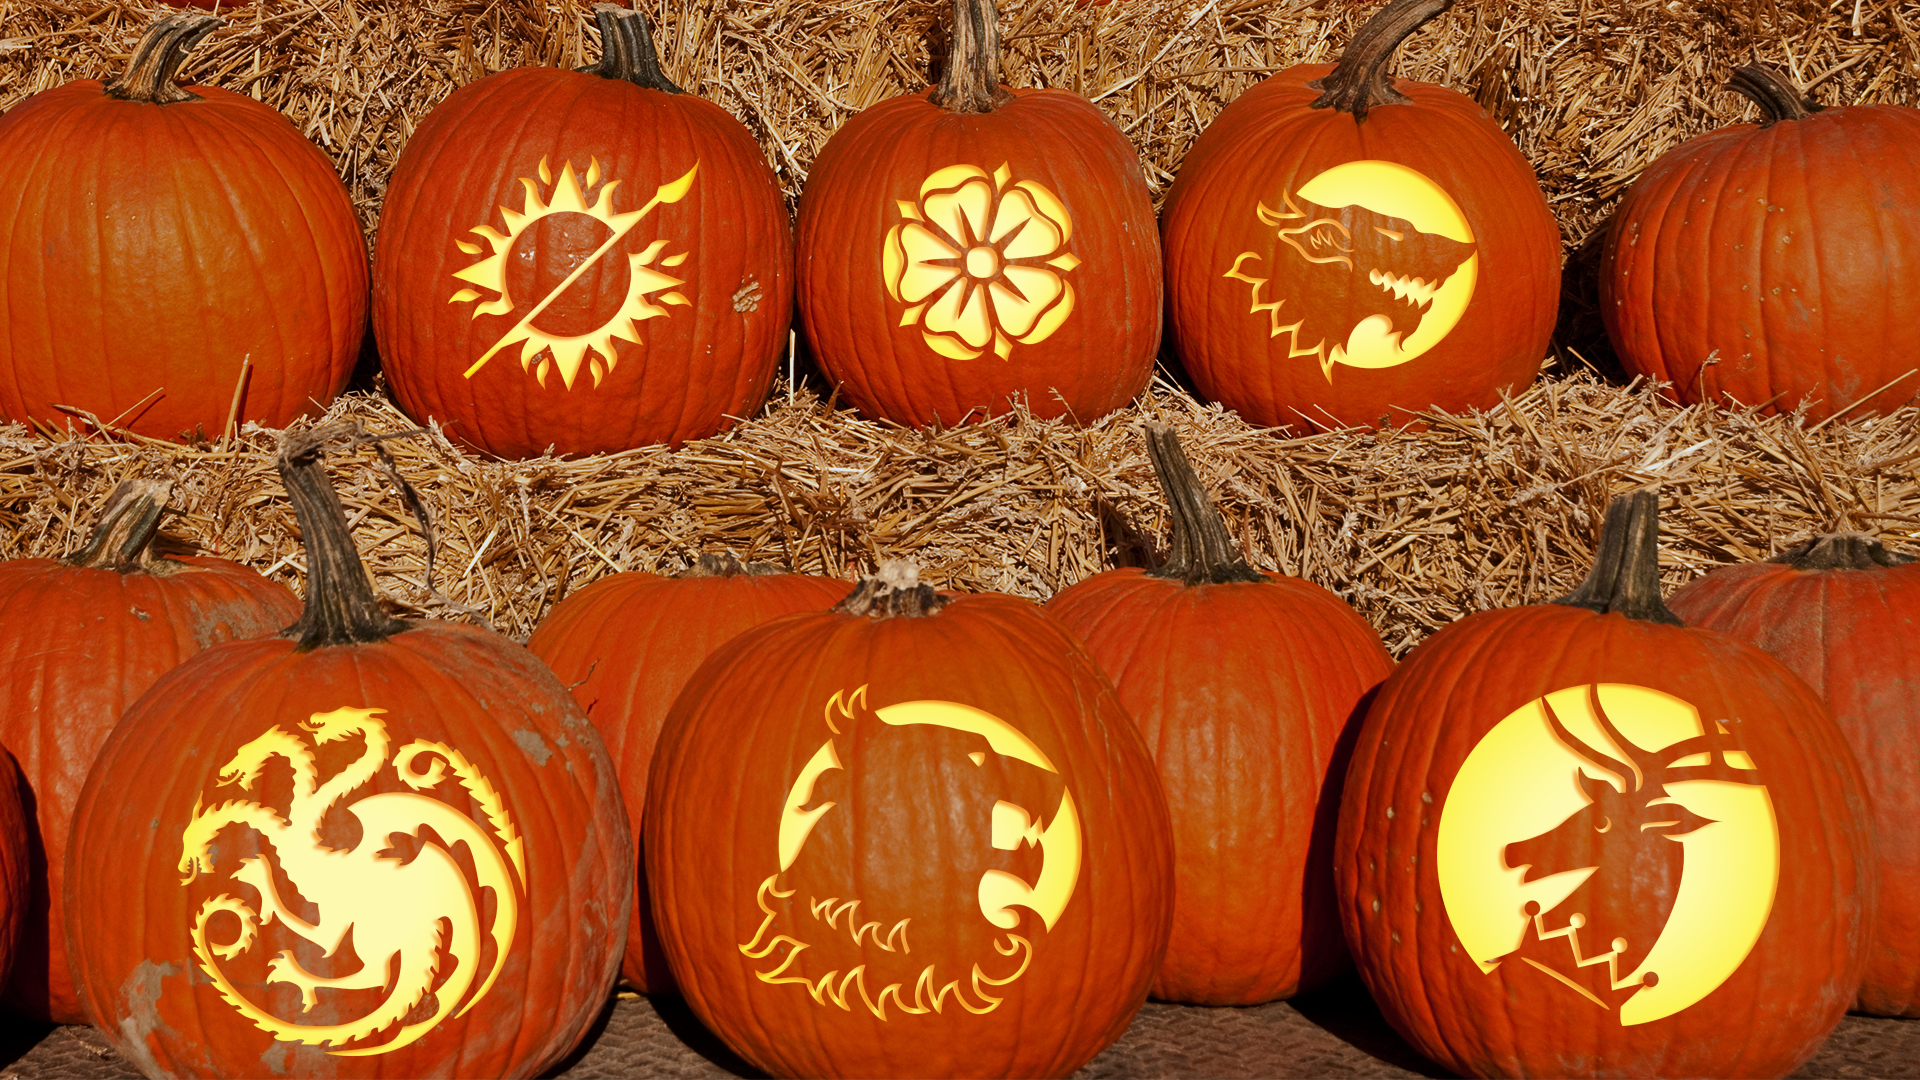 Game of Thrones pumpkin carving templates